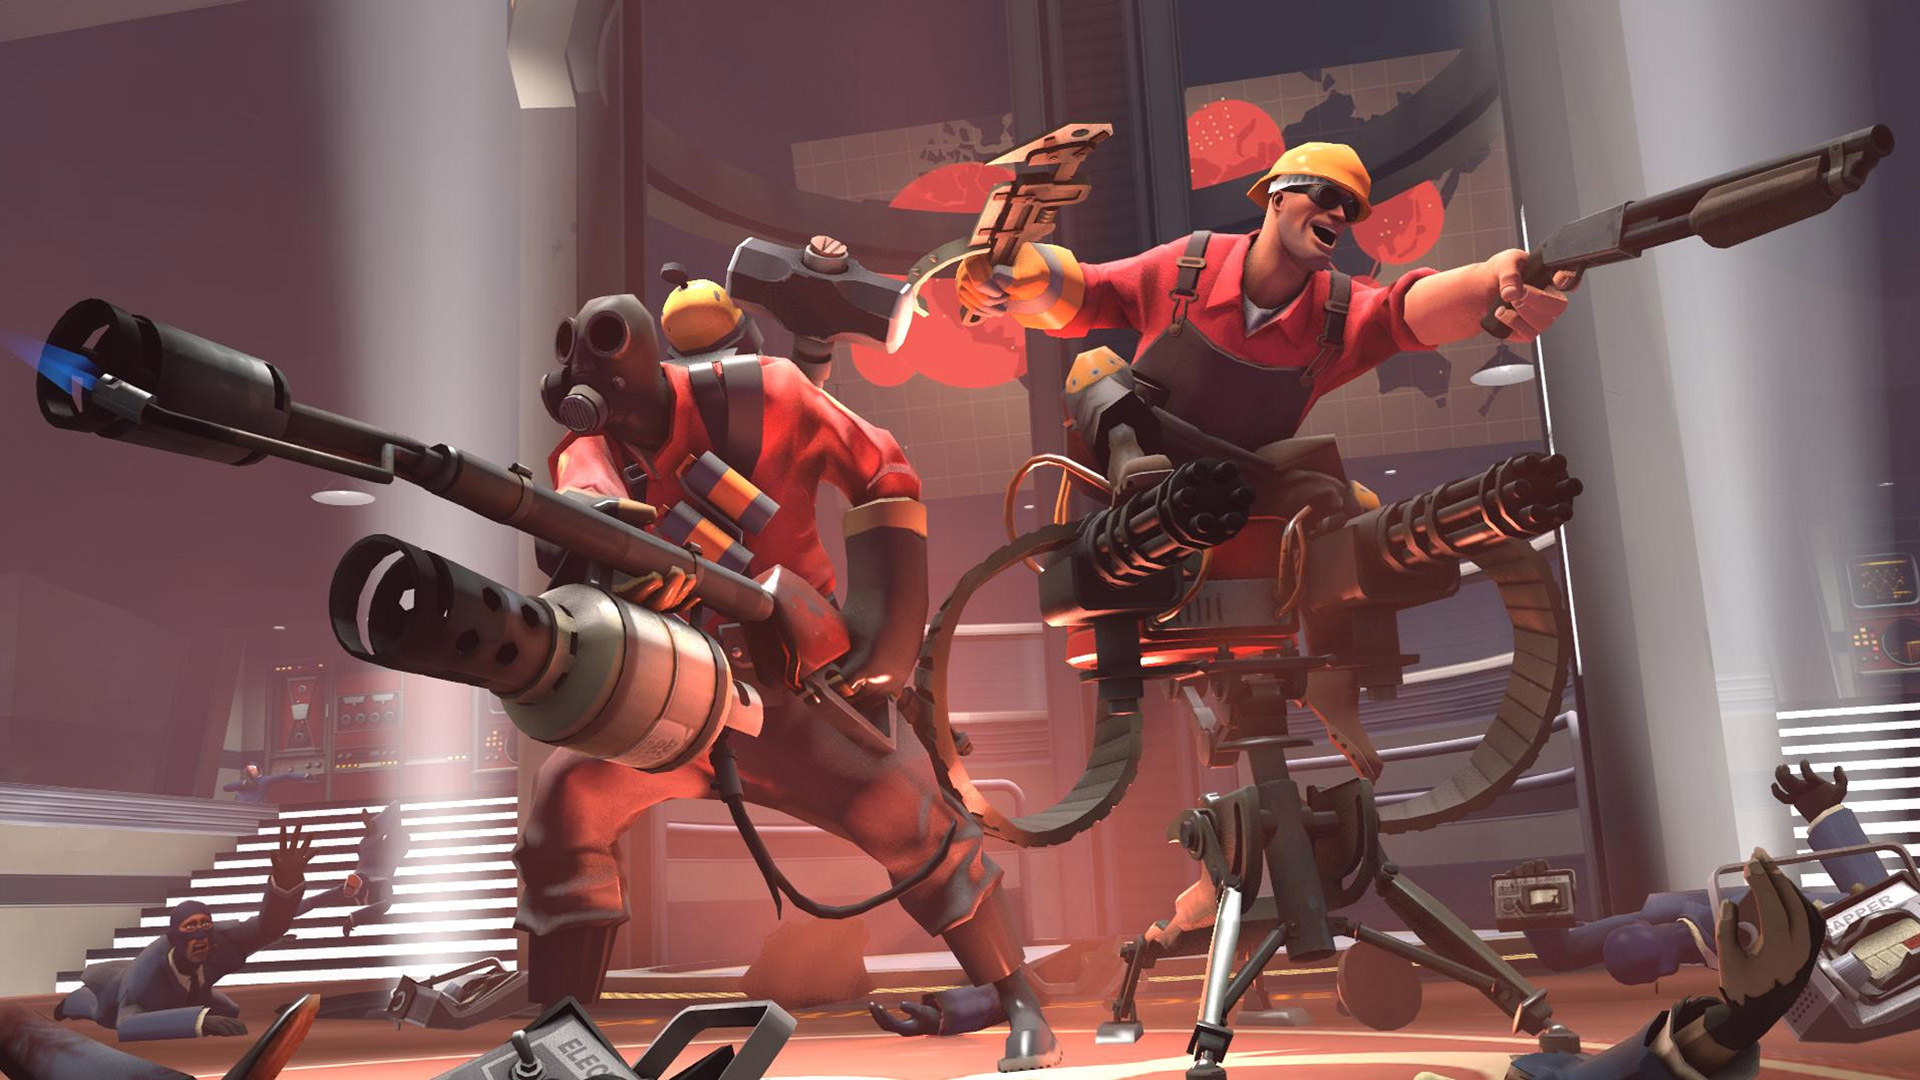 Team Fortress 2 wallpaper 5